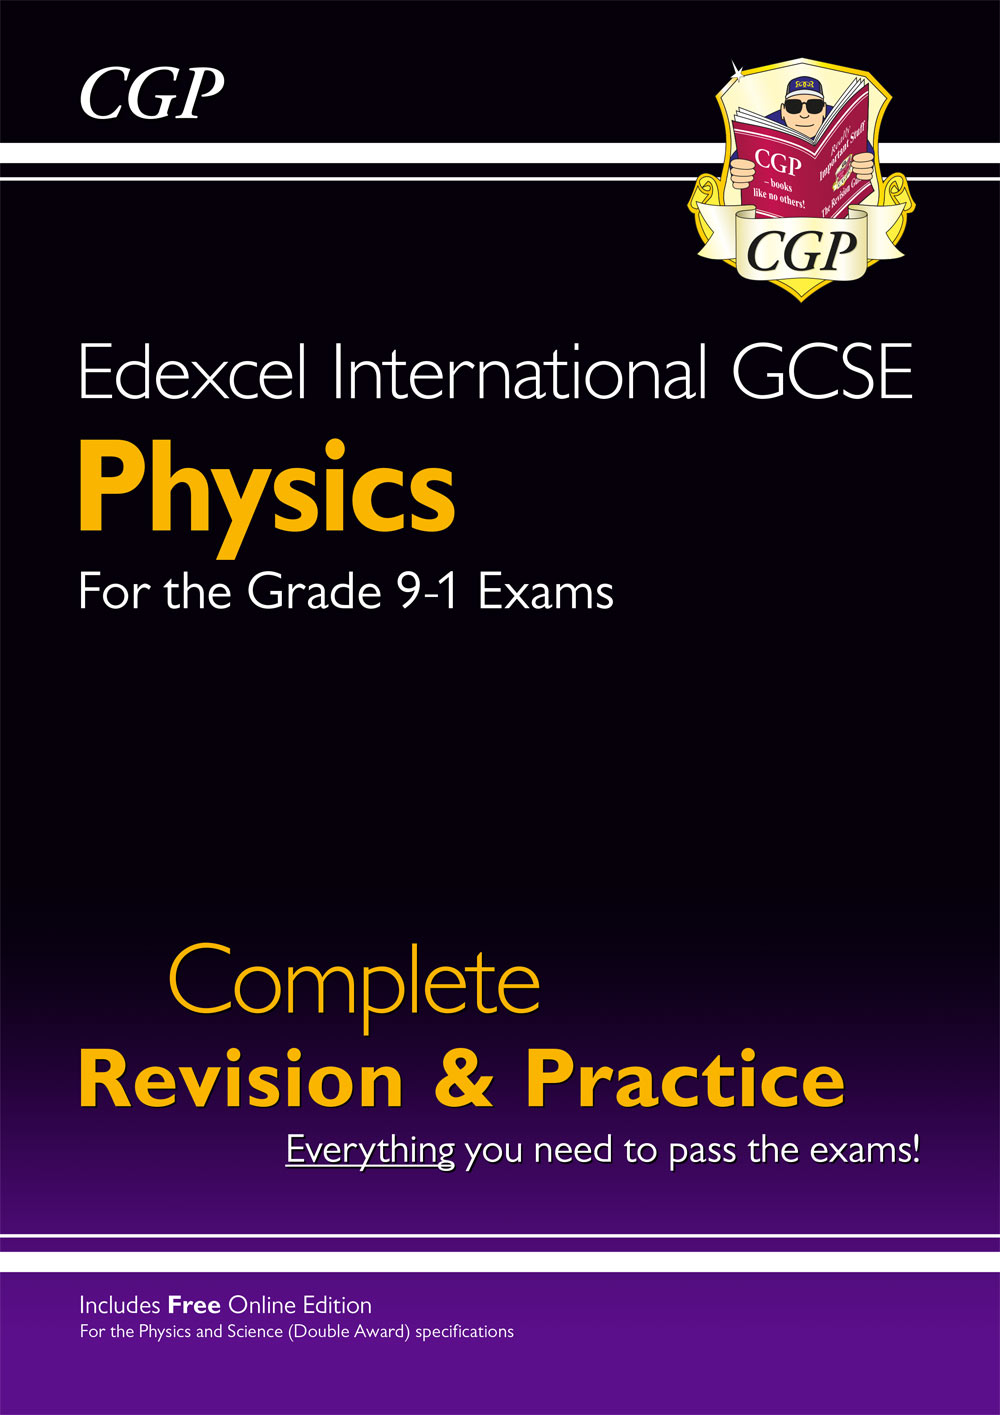 PESI42 - Grade 9-1 Edexcel International GCSE Physics: Complete Revision & Practice with Online Edit